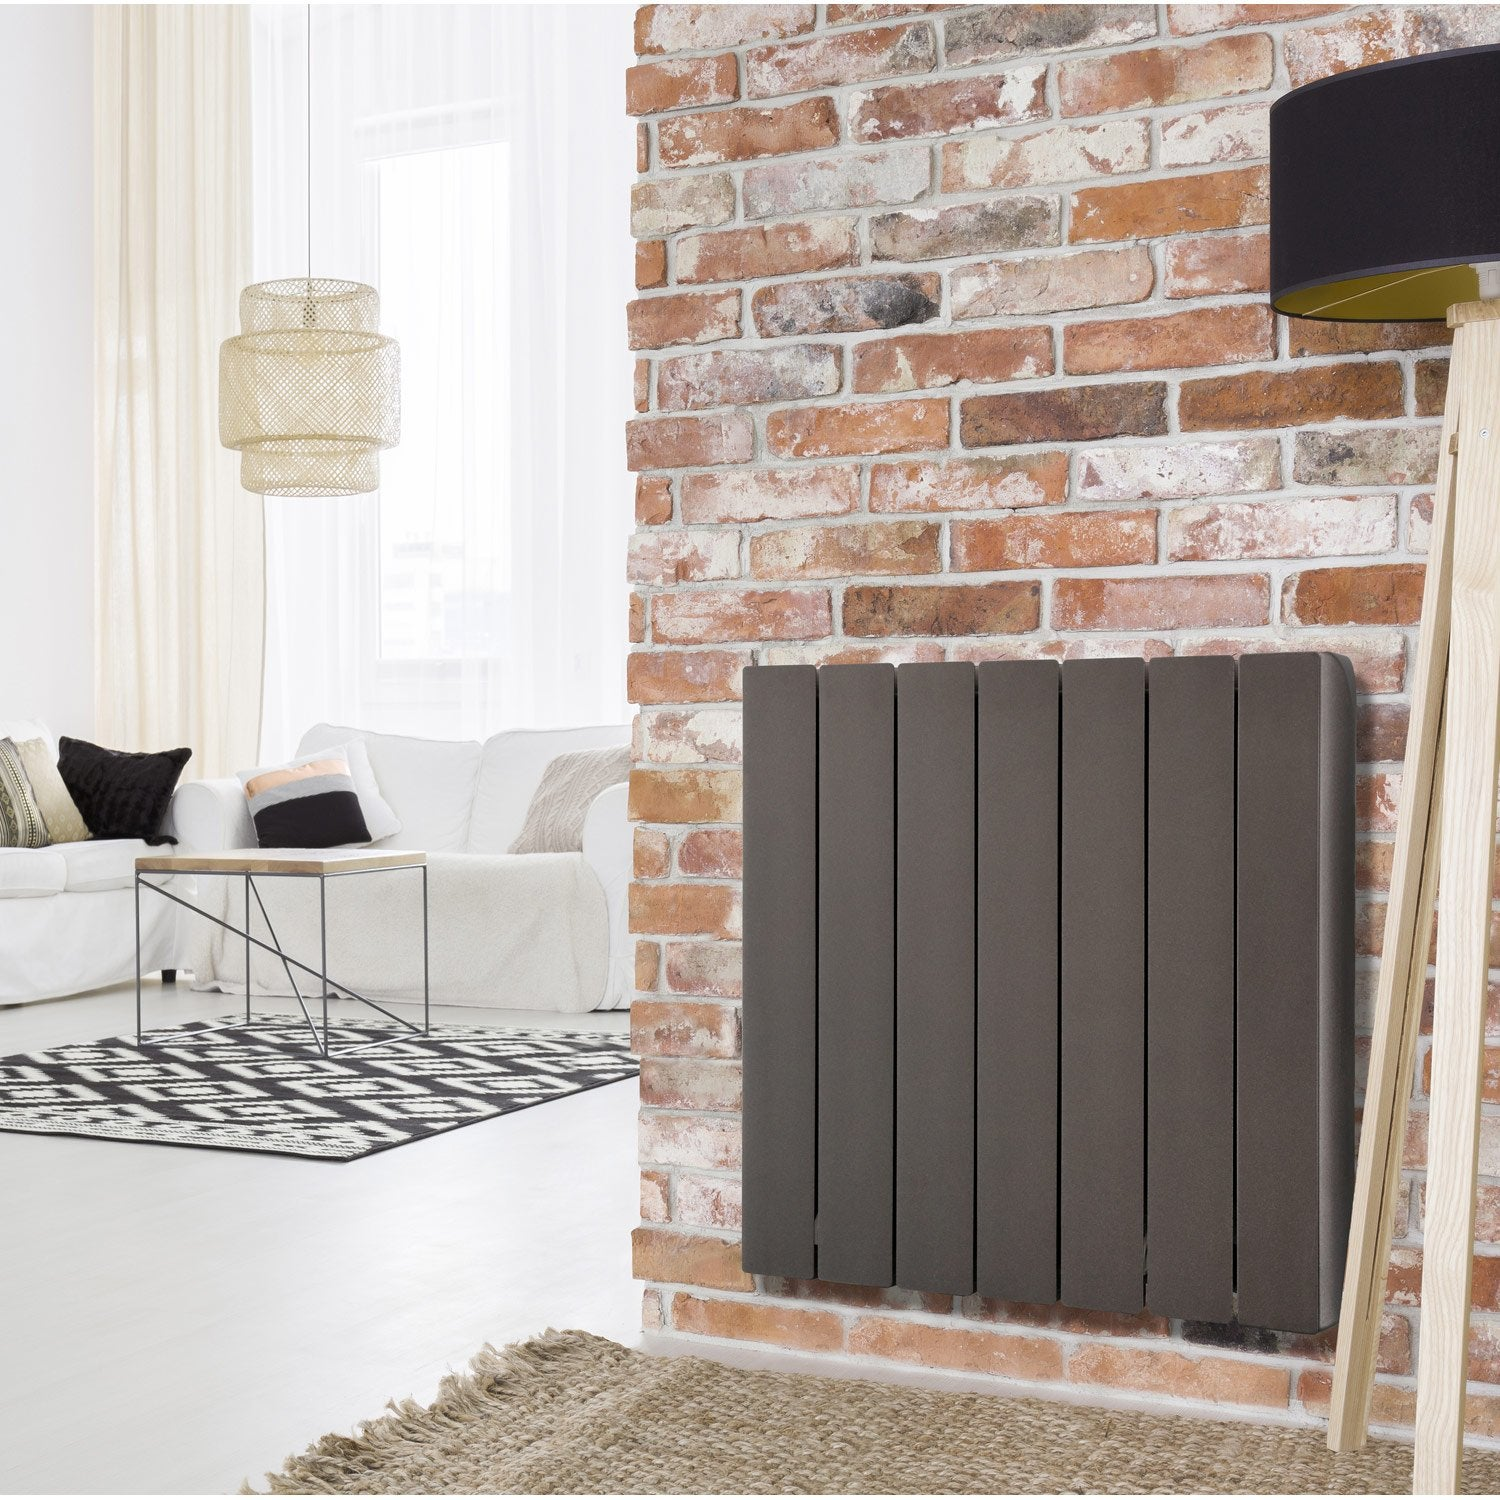 radiateur inertie fluide pas cher latest radiateur. Black Bedroom Furniture Sets. Home Design Ideas